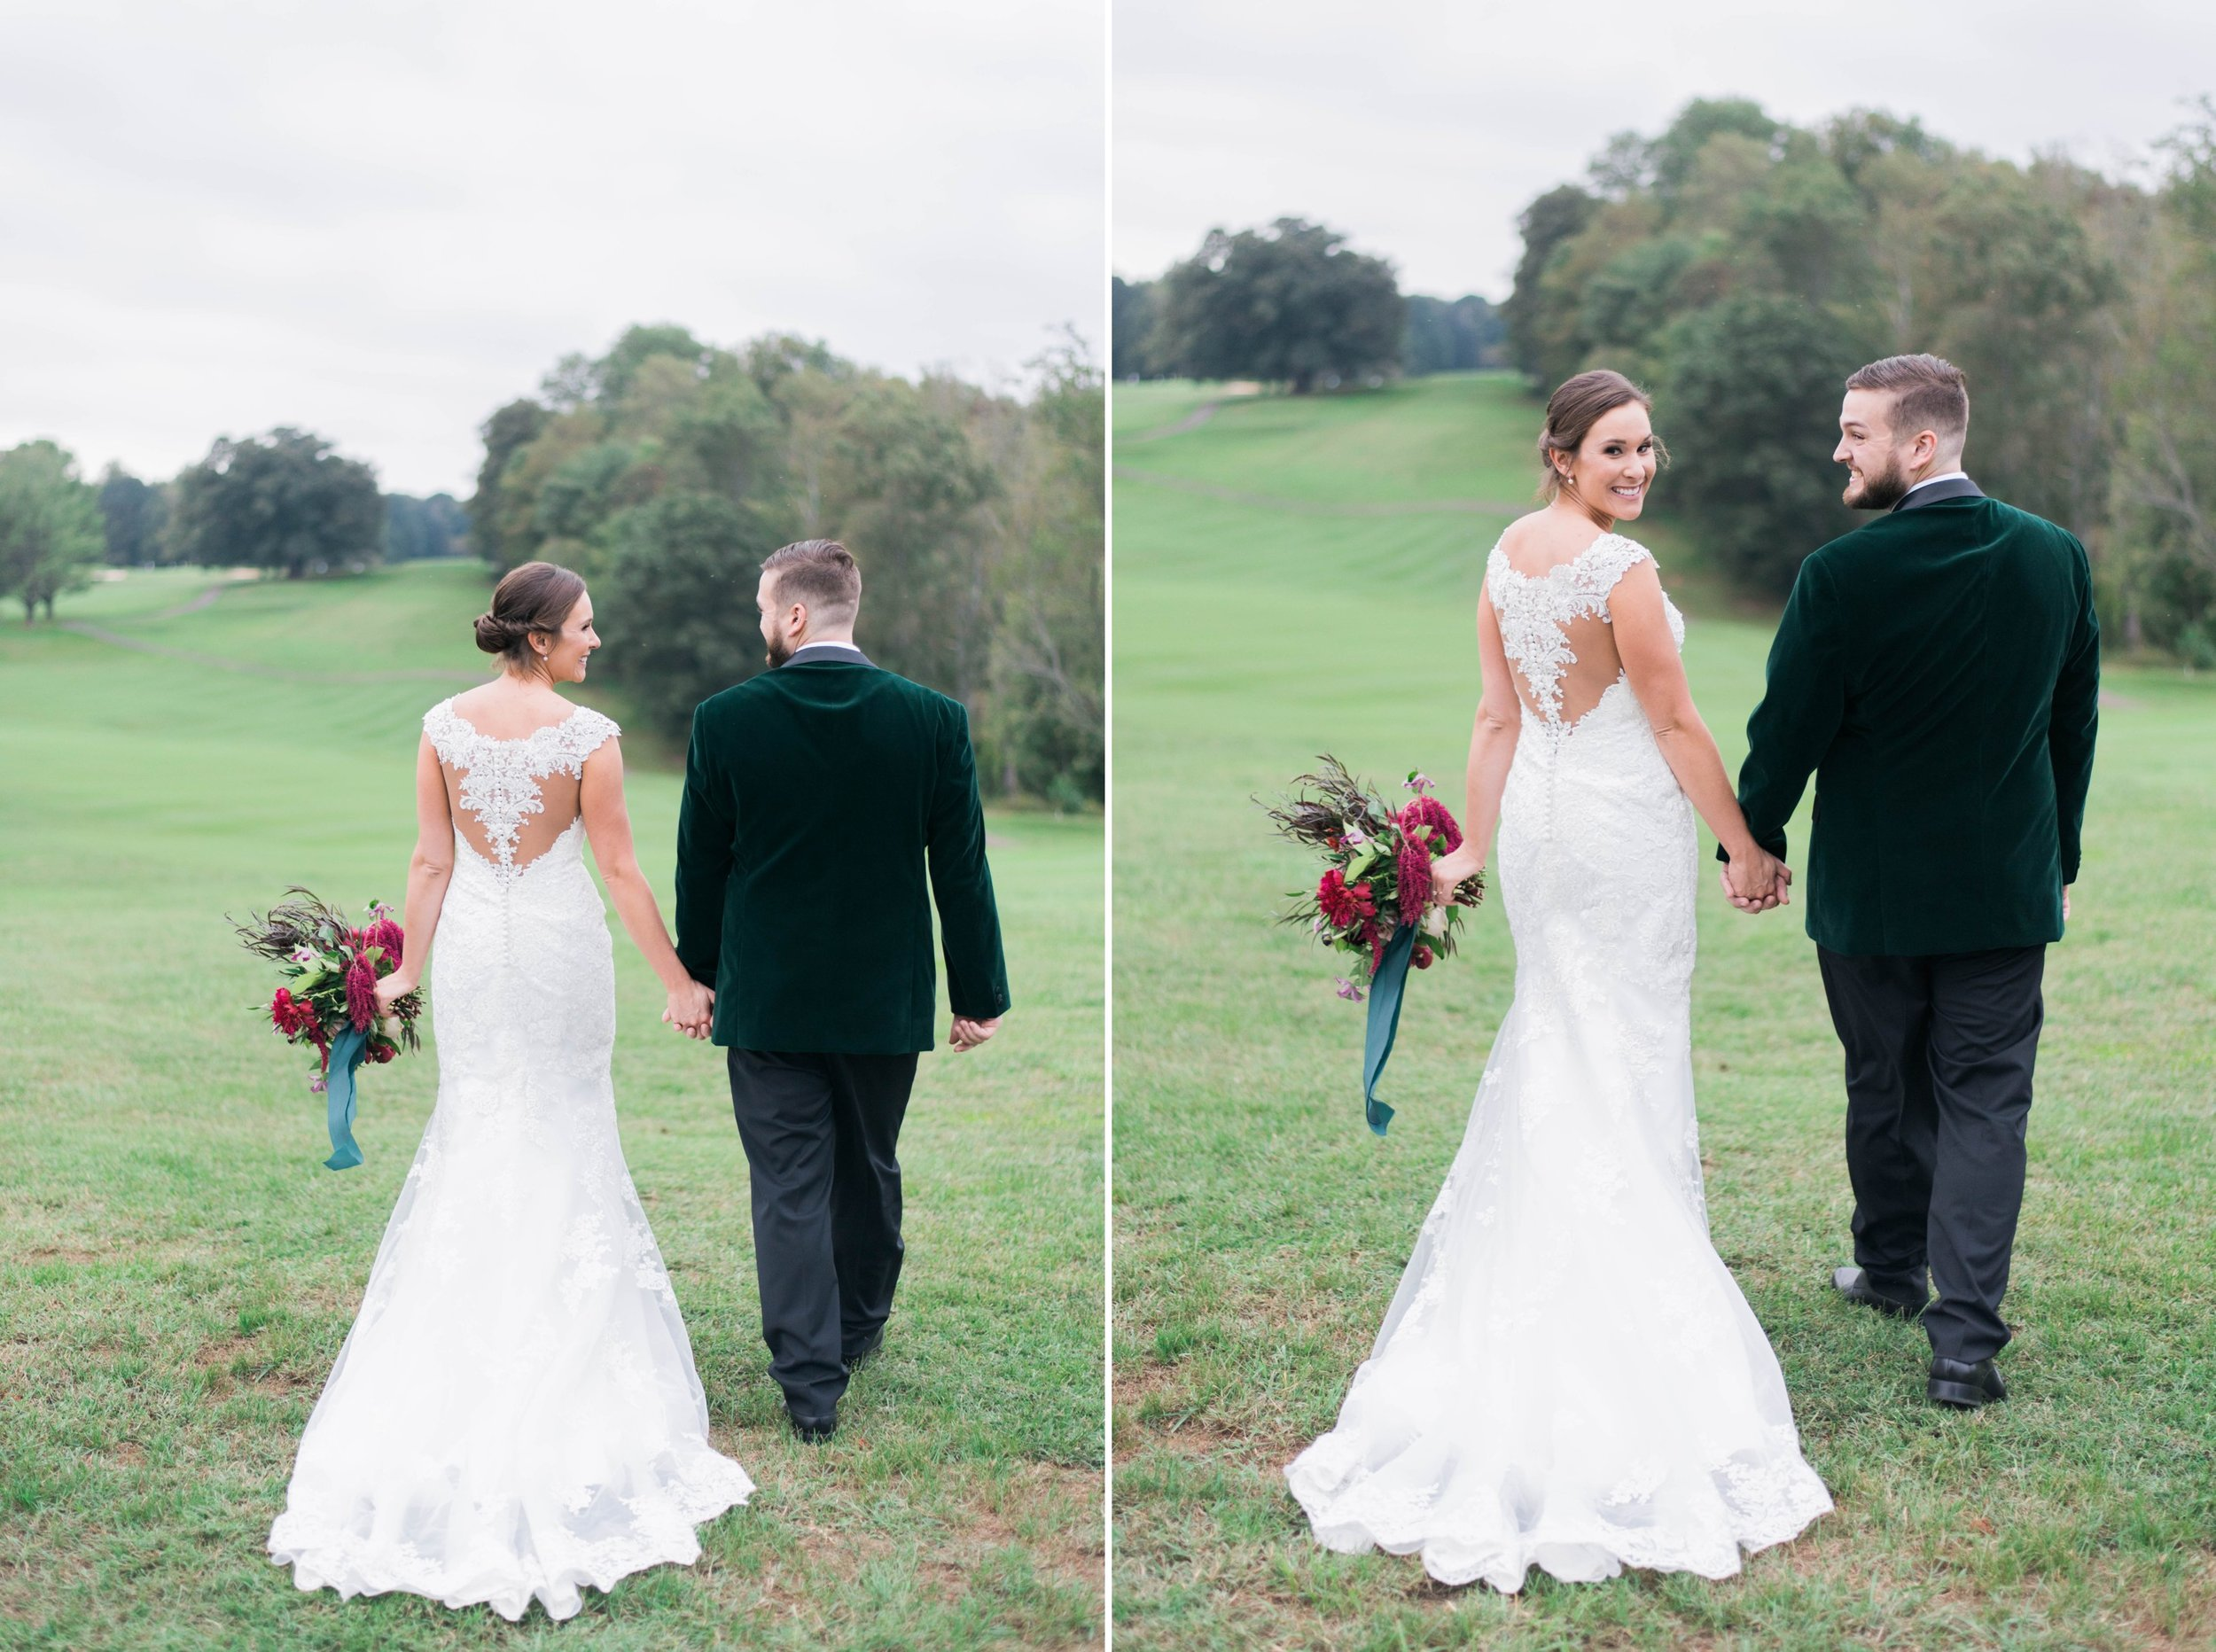 Gordan+Lauren_BoonsboroCountryClubWedding_Virginiaweddingphotographer_LynchburgVi 39.jpg